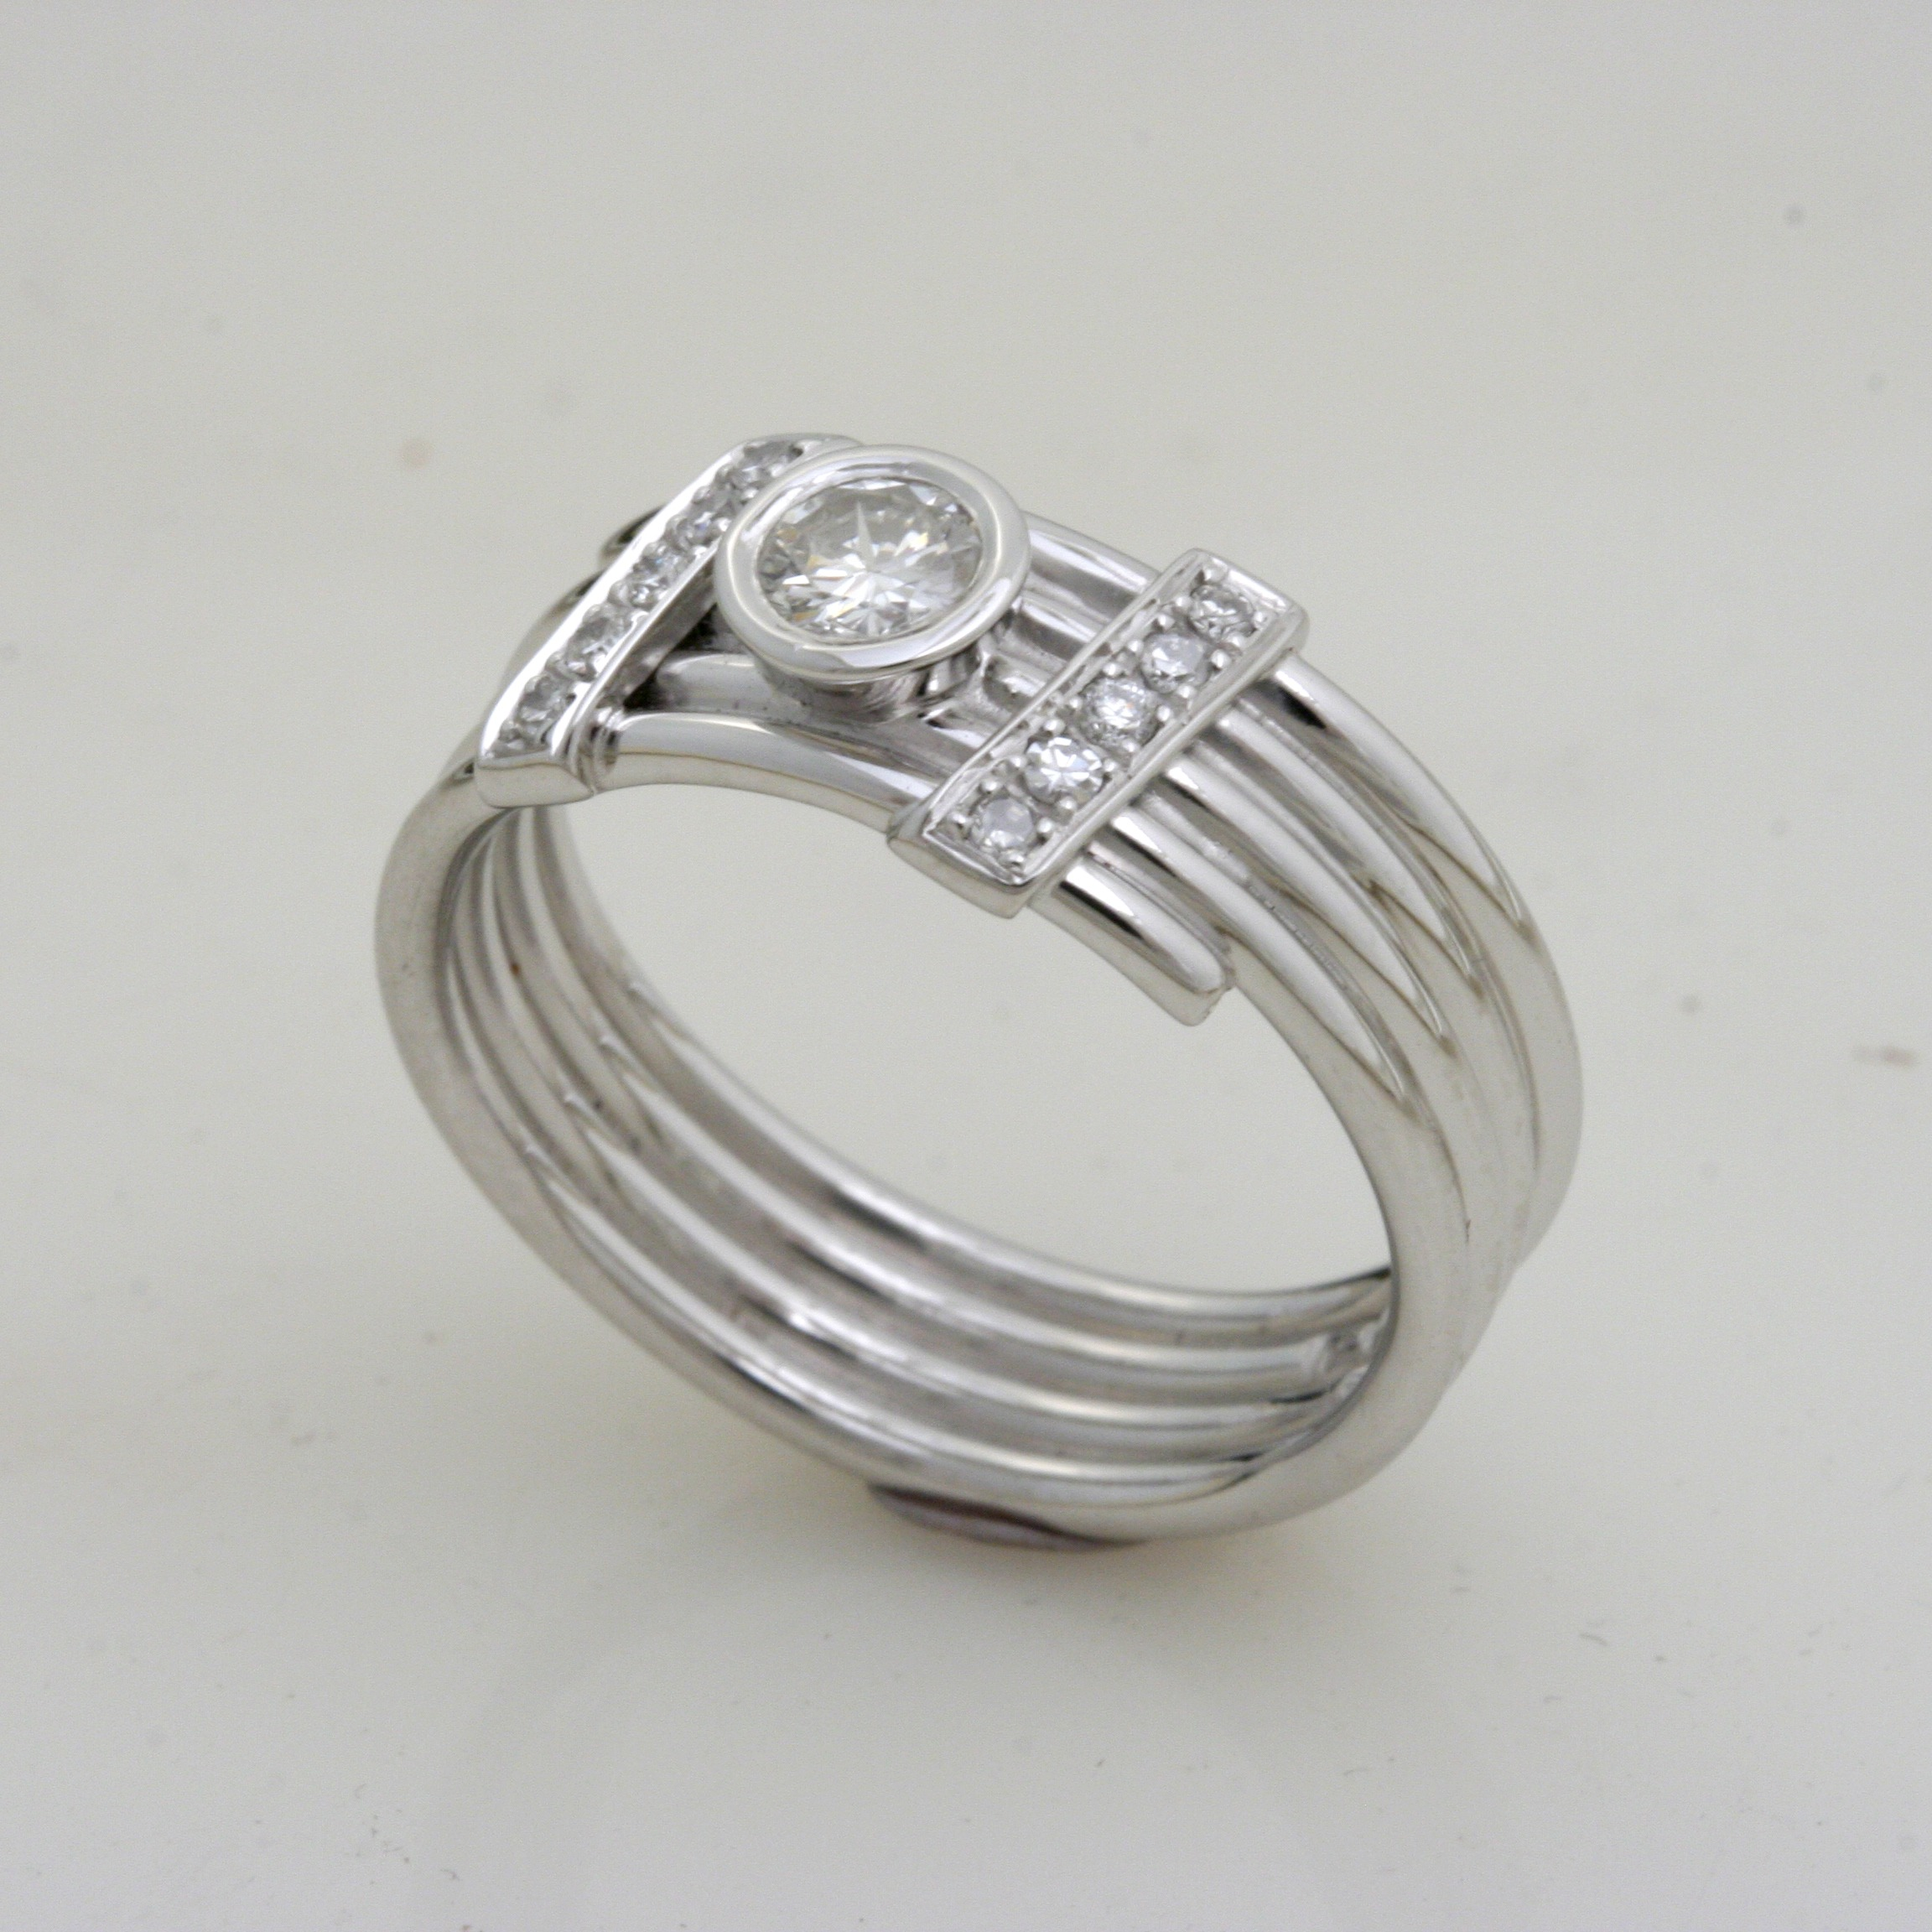 Coiled Diamond Engagement Ring 4